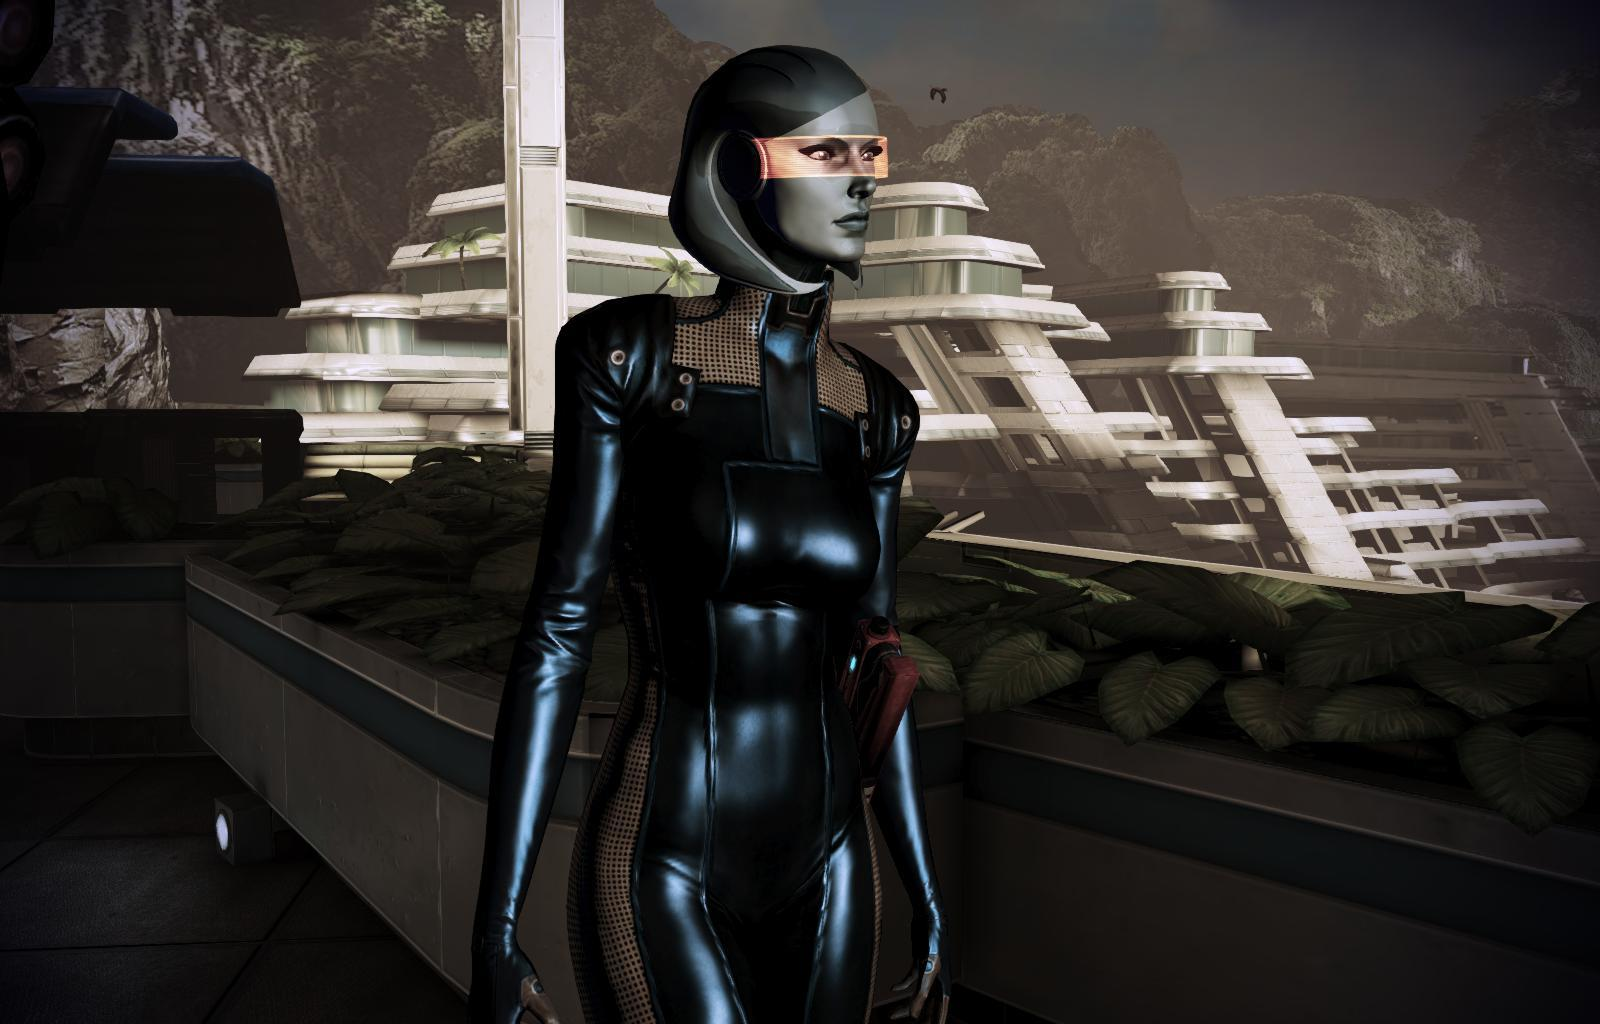 Mass effect 3 tali hentaifilm adult toons